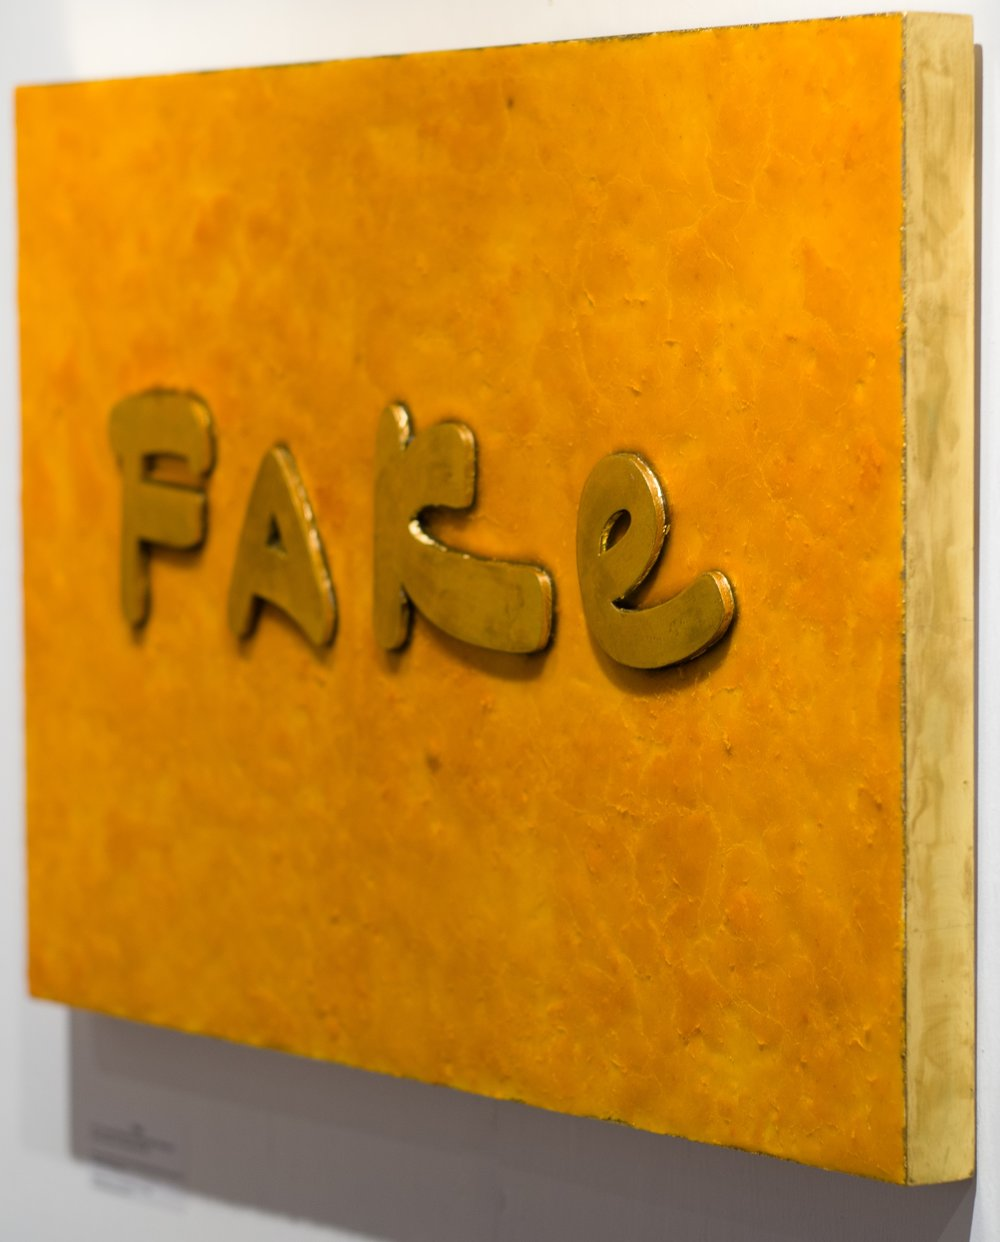 Fake(Detail of fake gold lettering and edge)